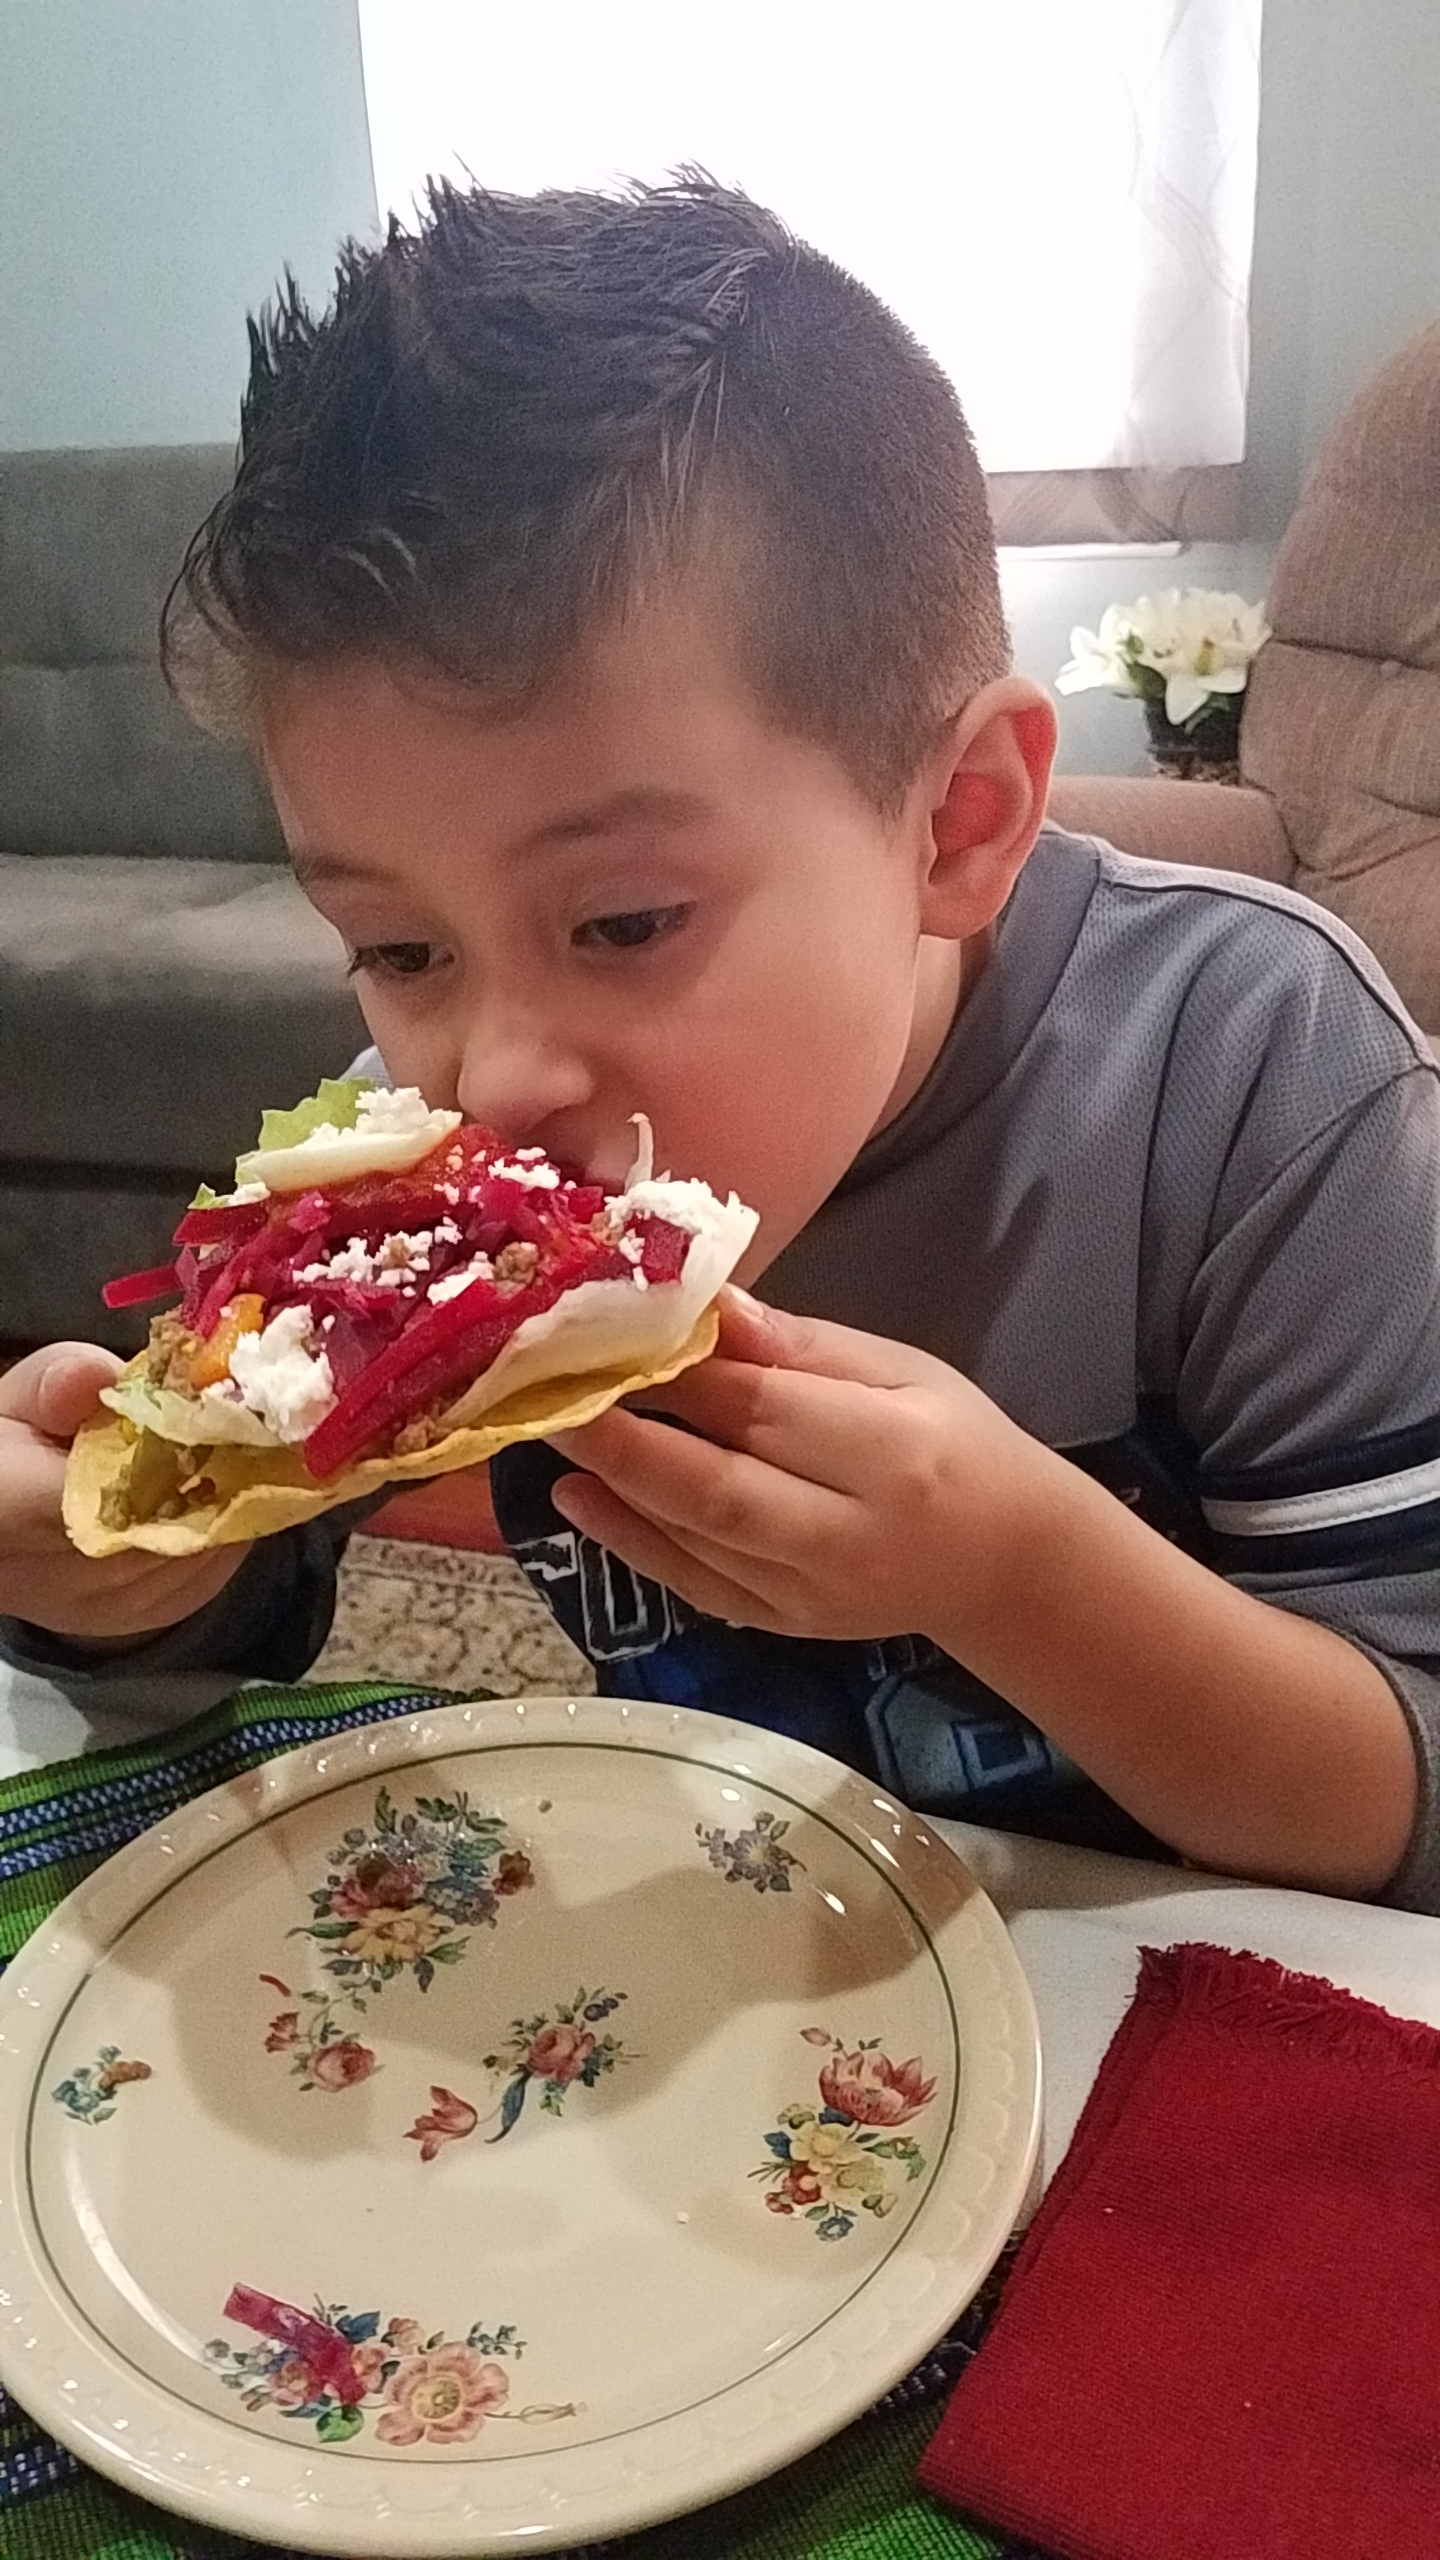 Chowing down on a beet tostada!